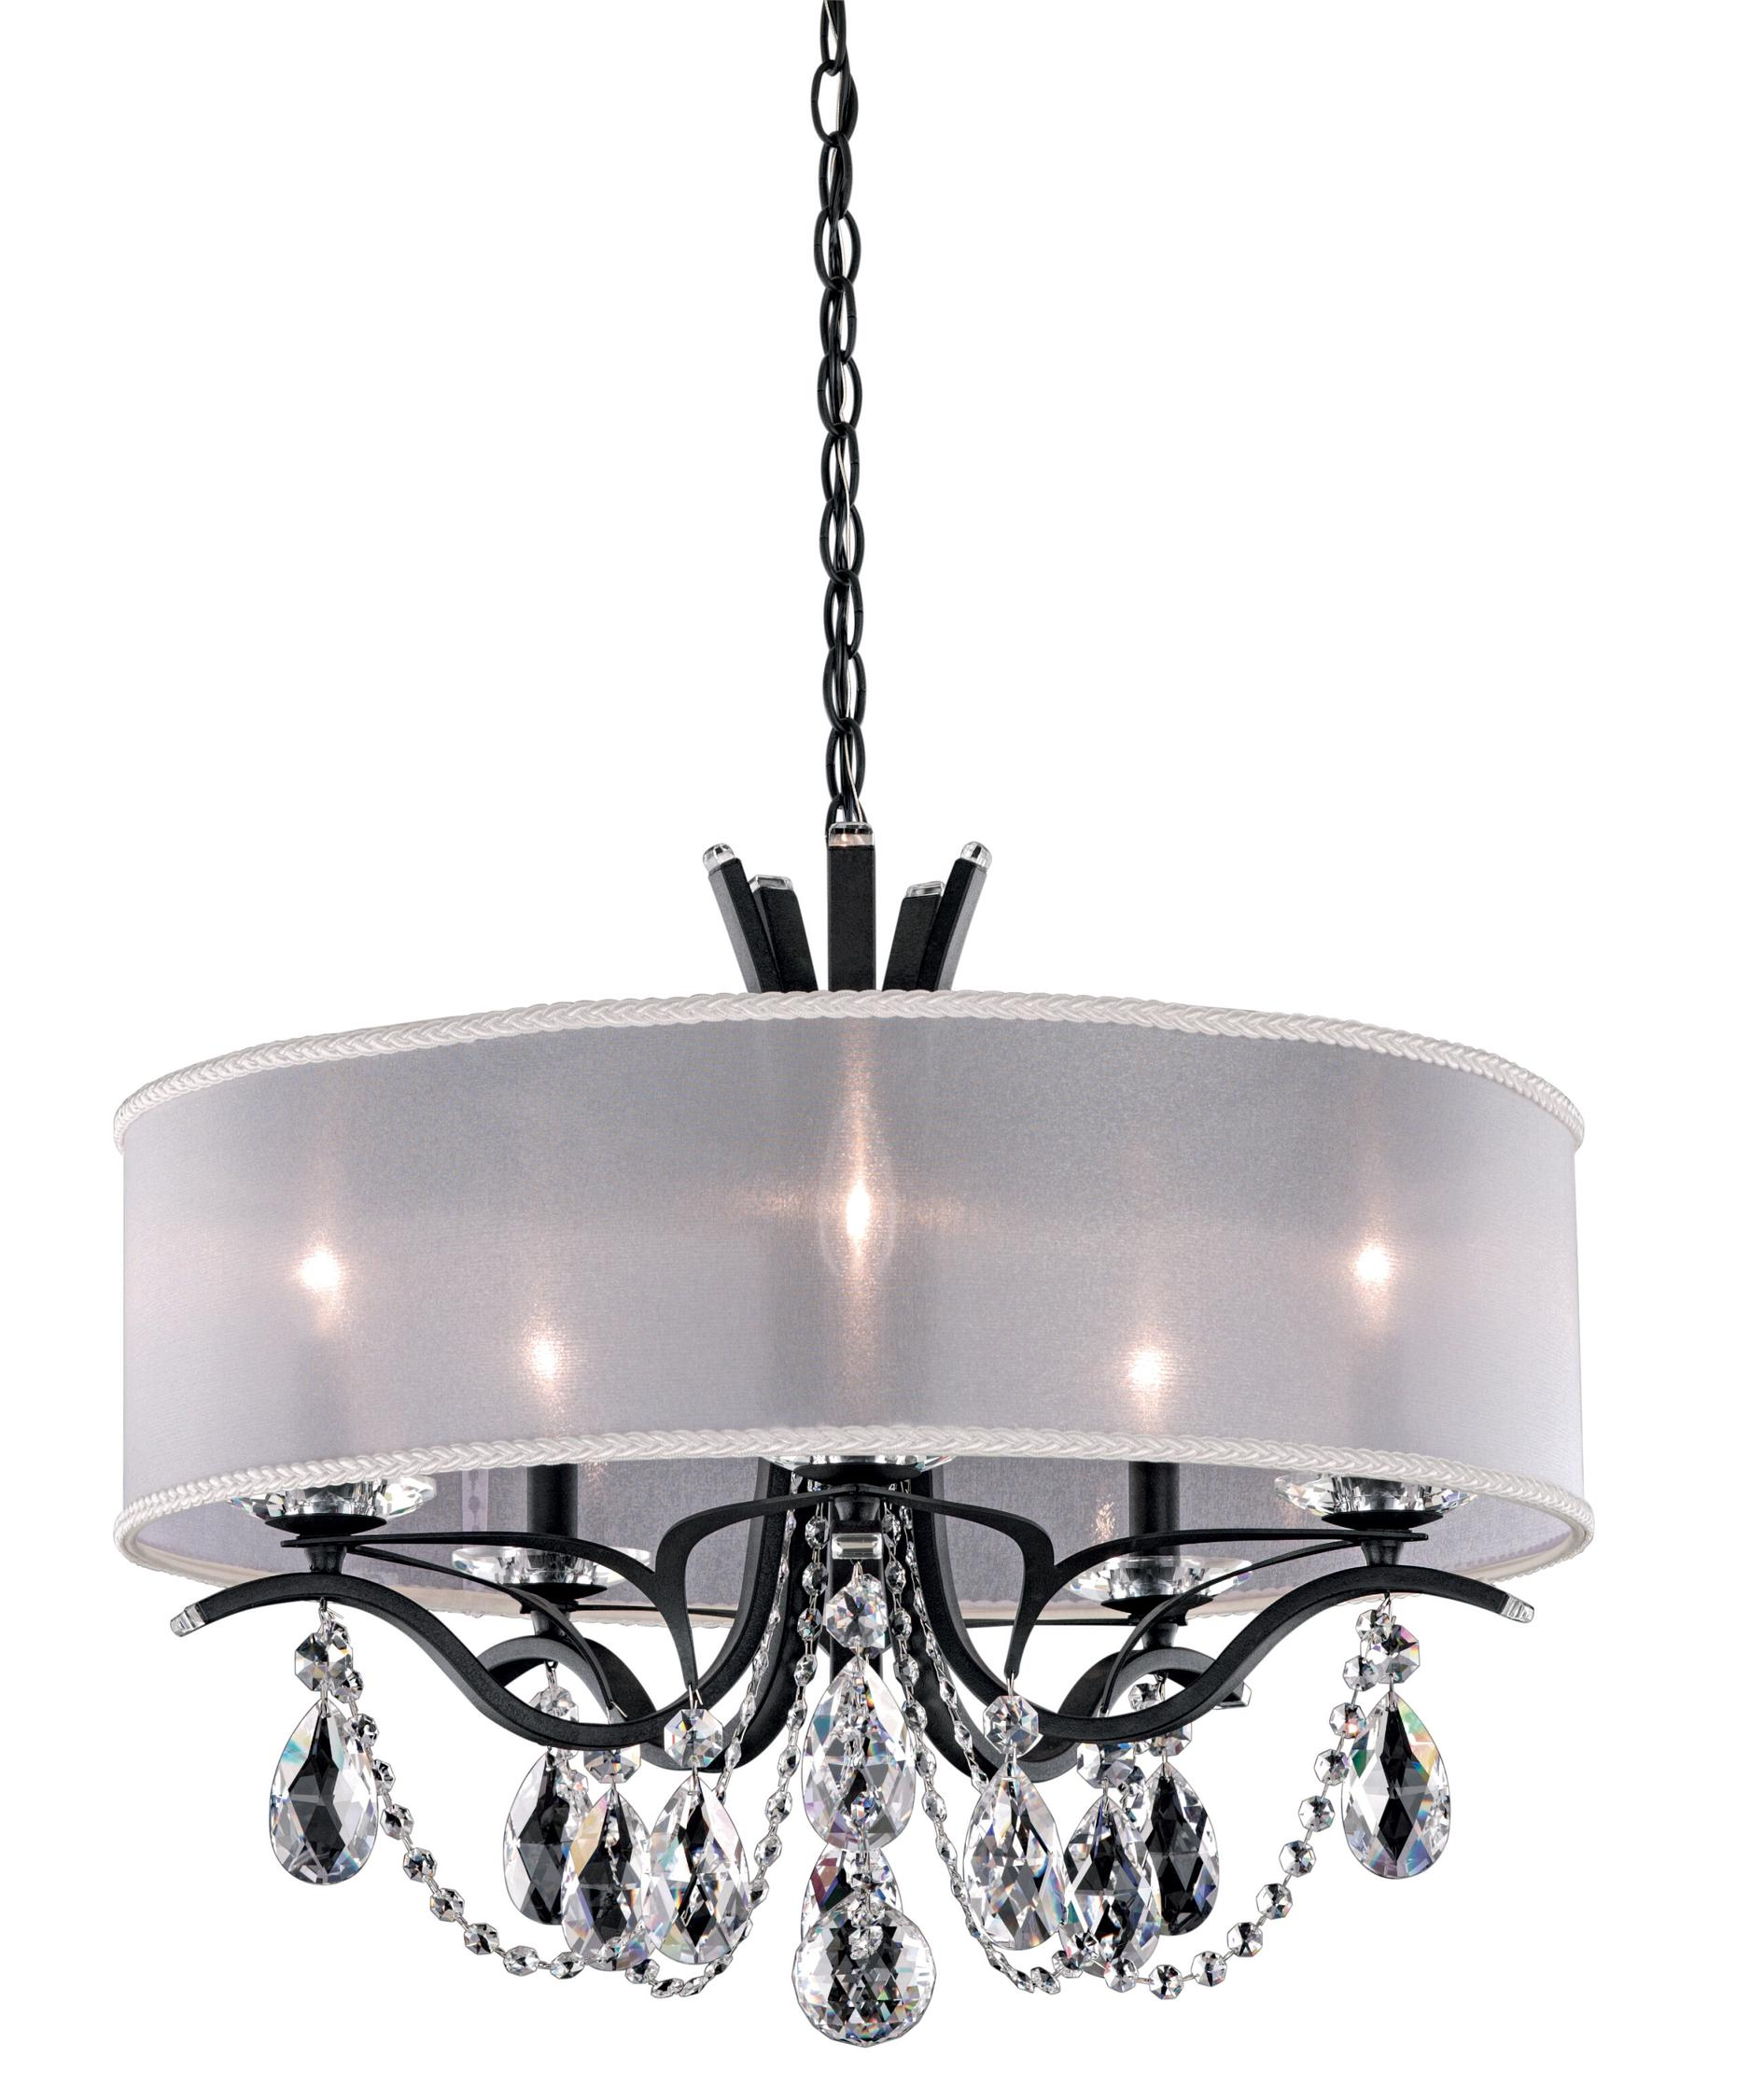 schonbek va8305 vesca 24 inch wide 5 light chandelier capitol lighting - Schonbek Lighting